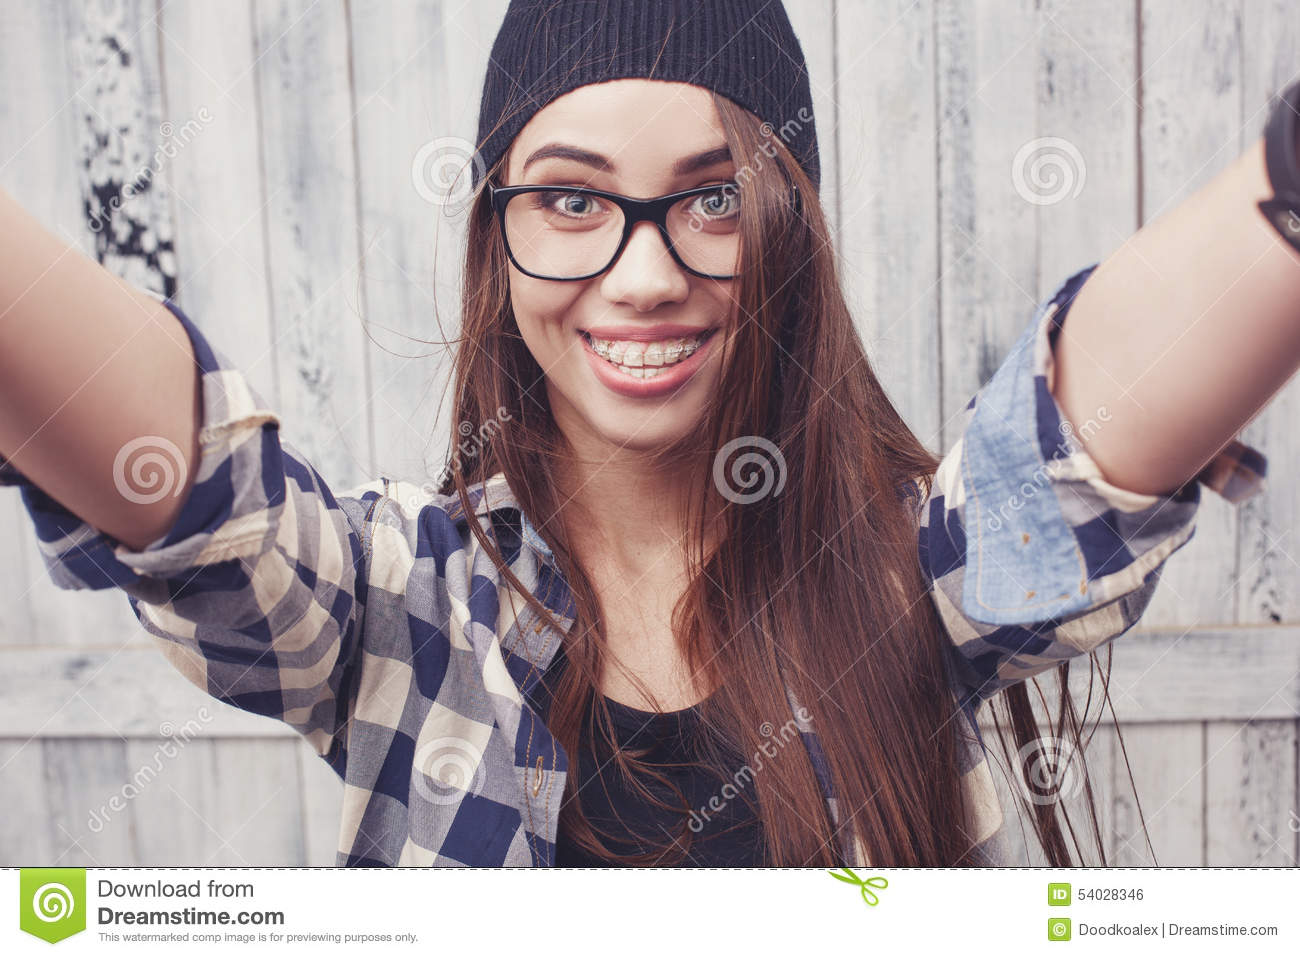 Hipster Girl In Glasses And Black Beanie Stock Photo - Image of ... 5f4488b64a8